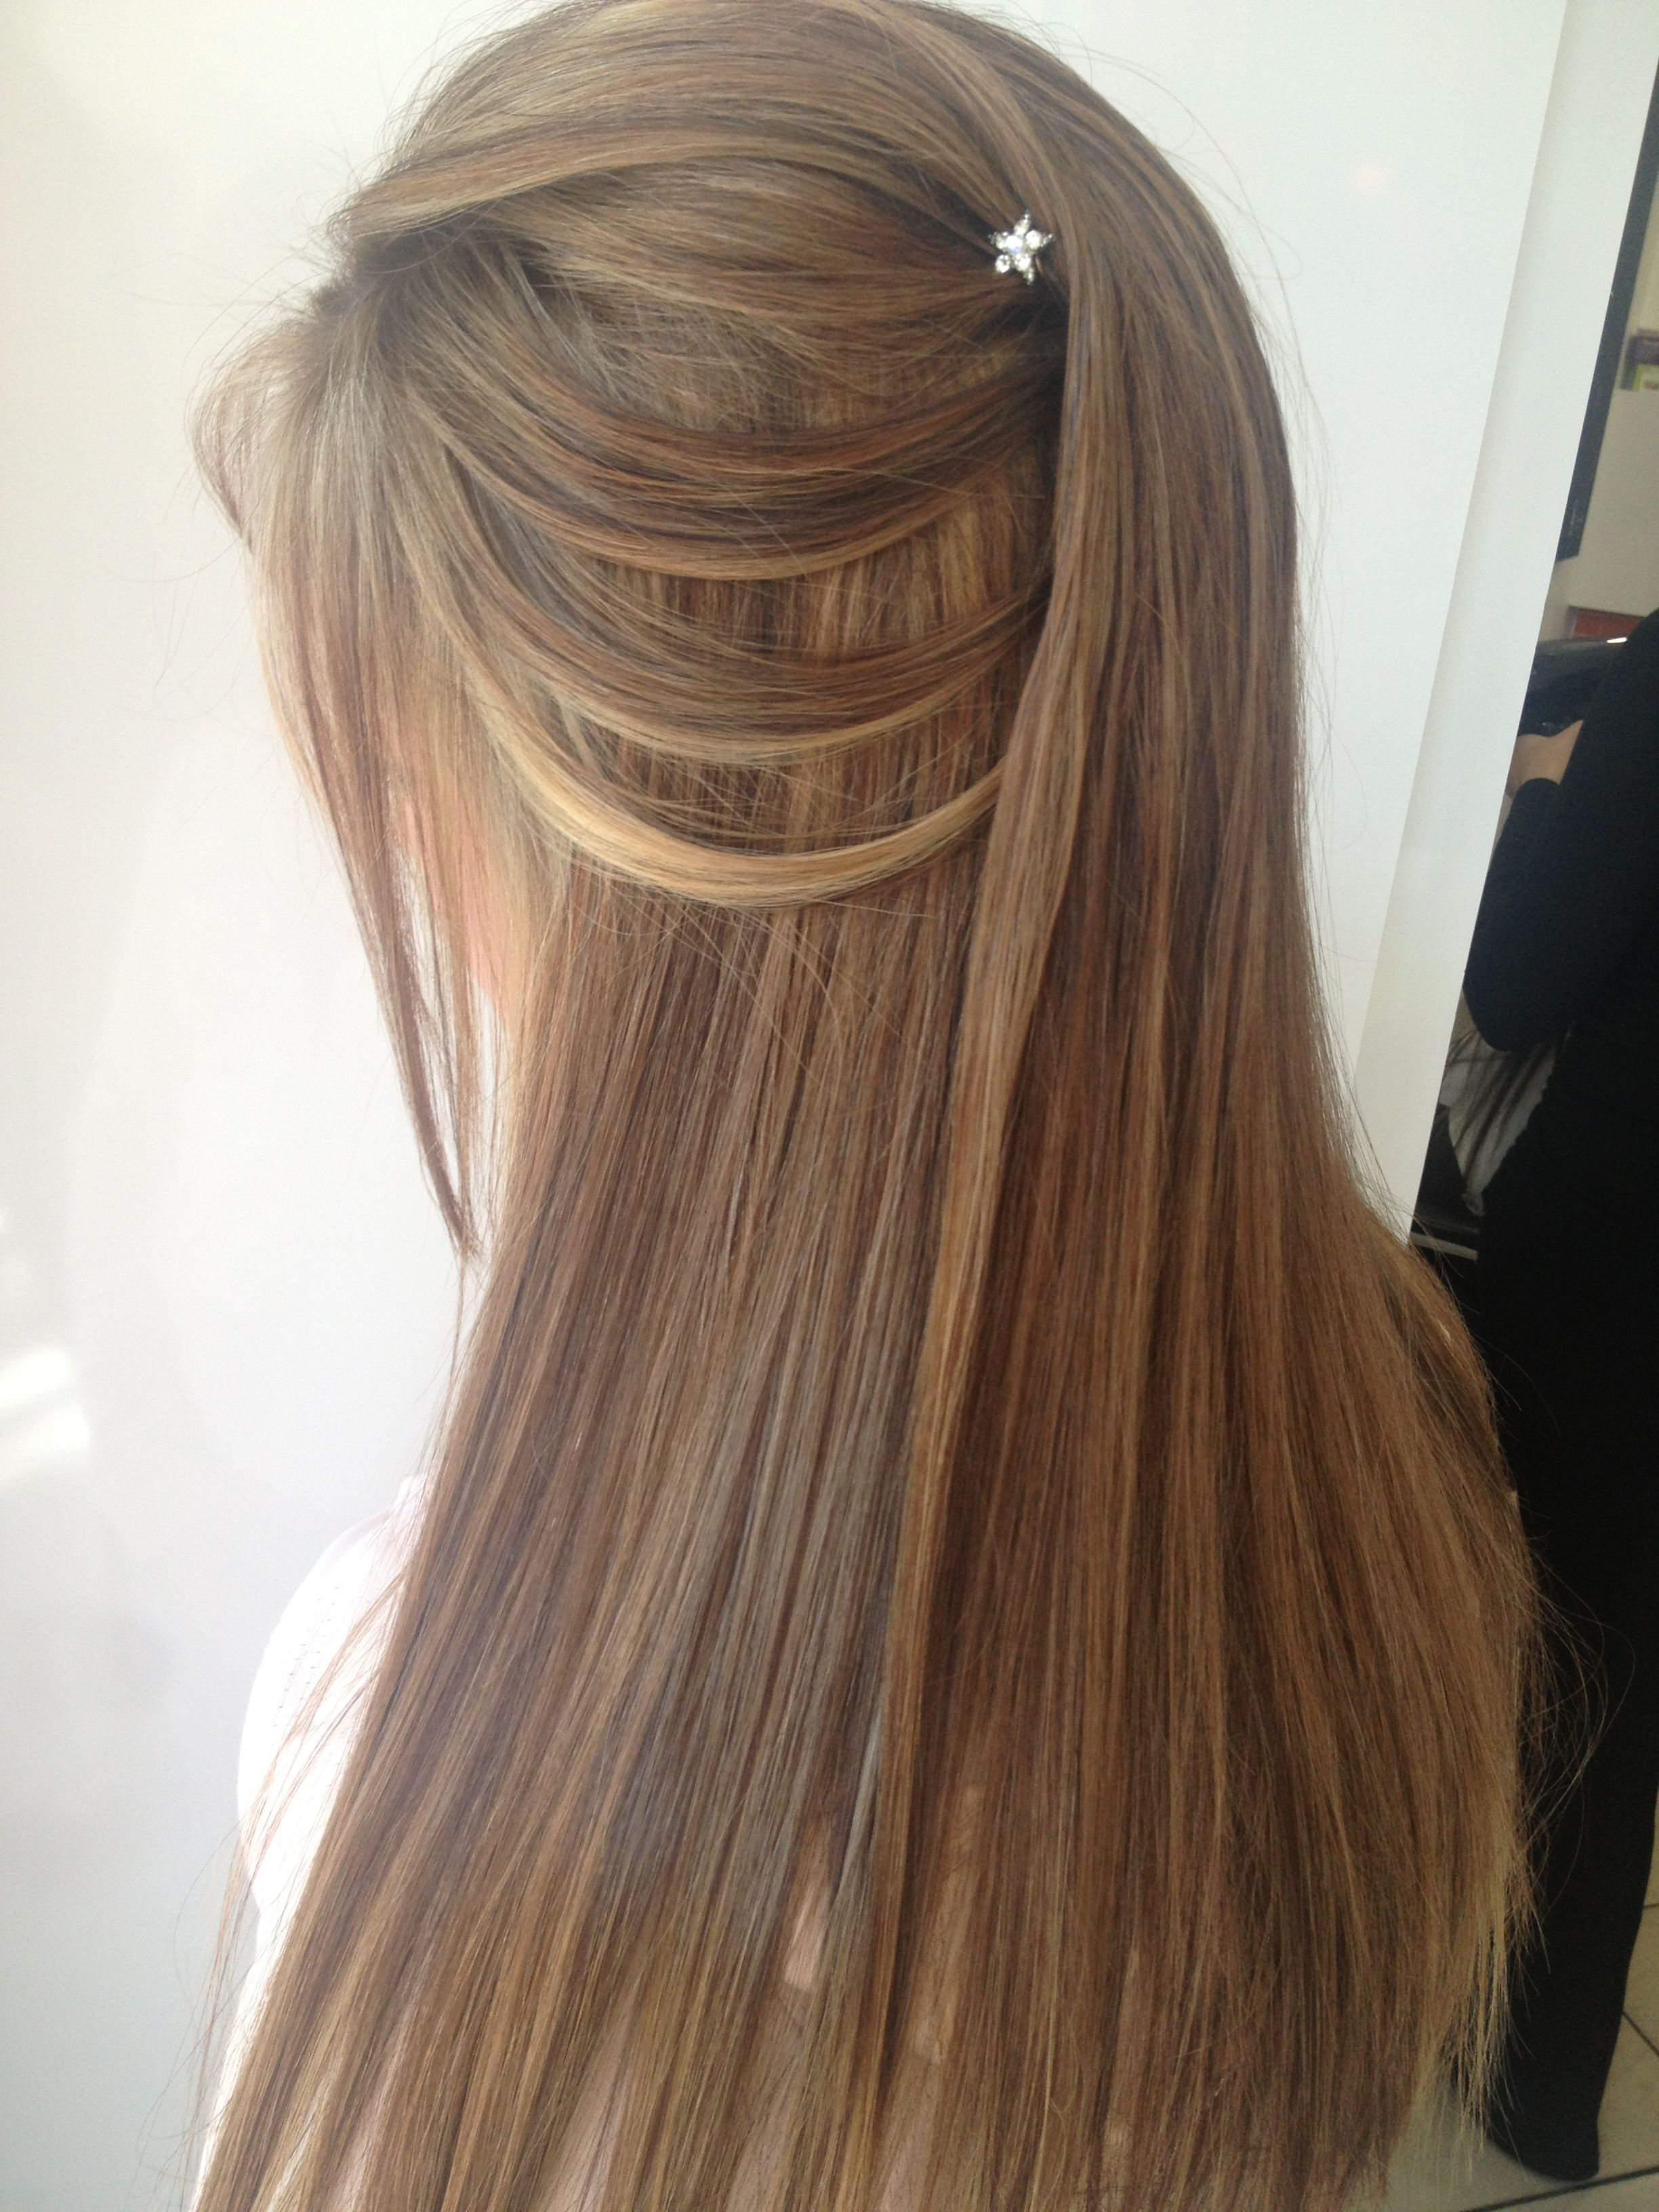 Half Up Half Down Hairstyle I Did For A Matric Dance Hair Styles Hair Inspiration Hair Beauty